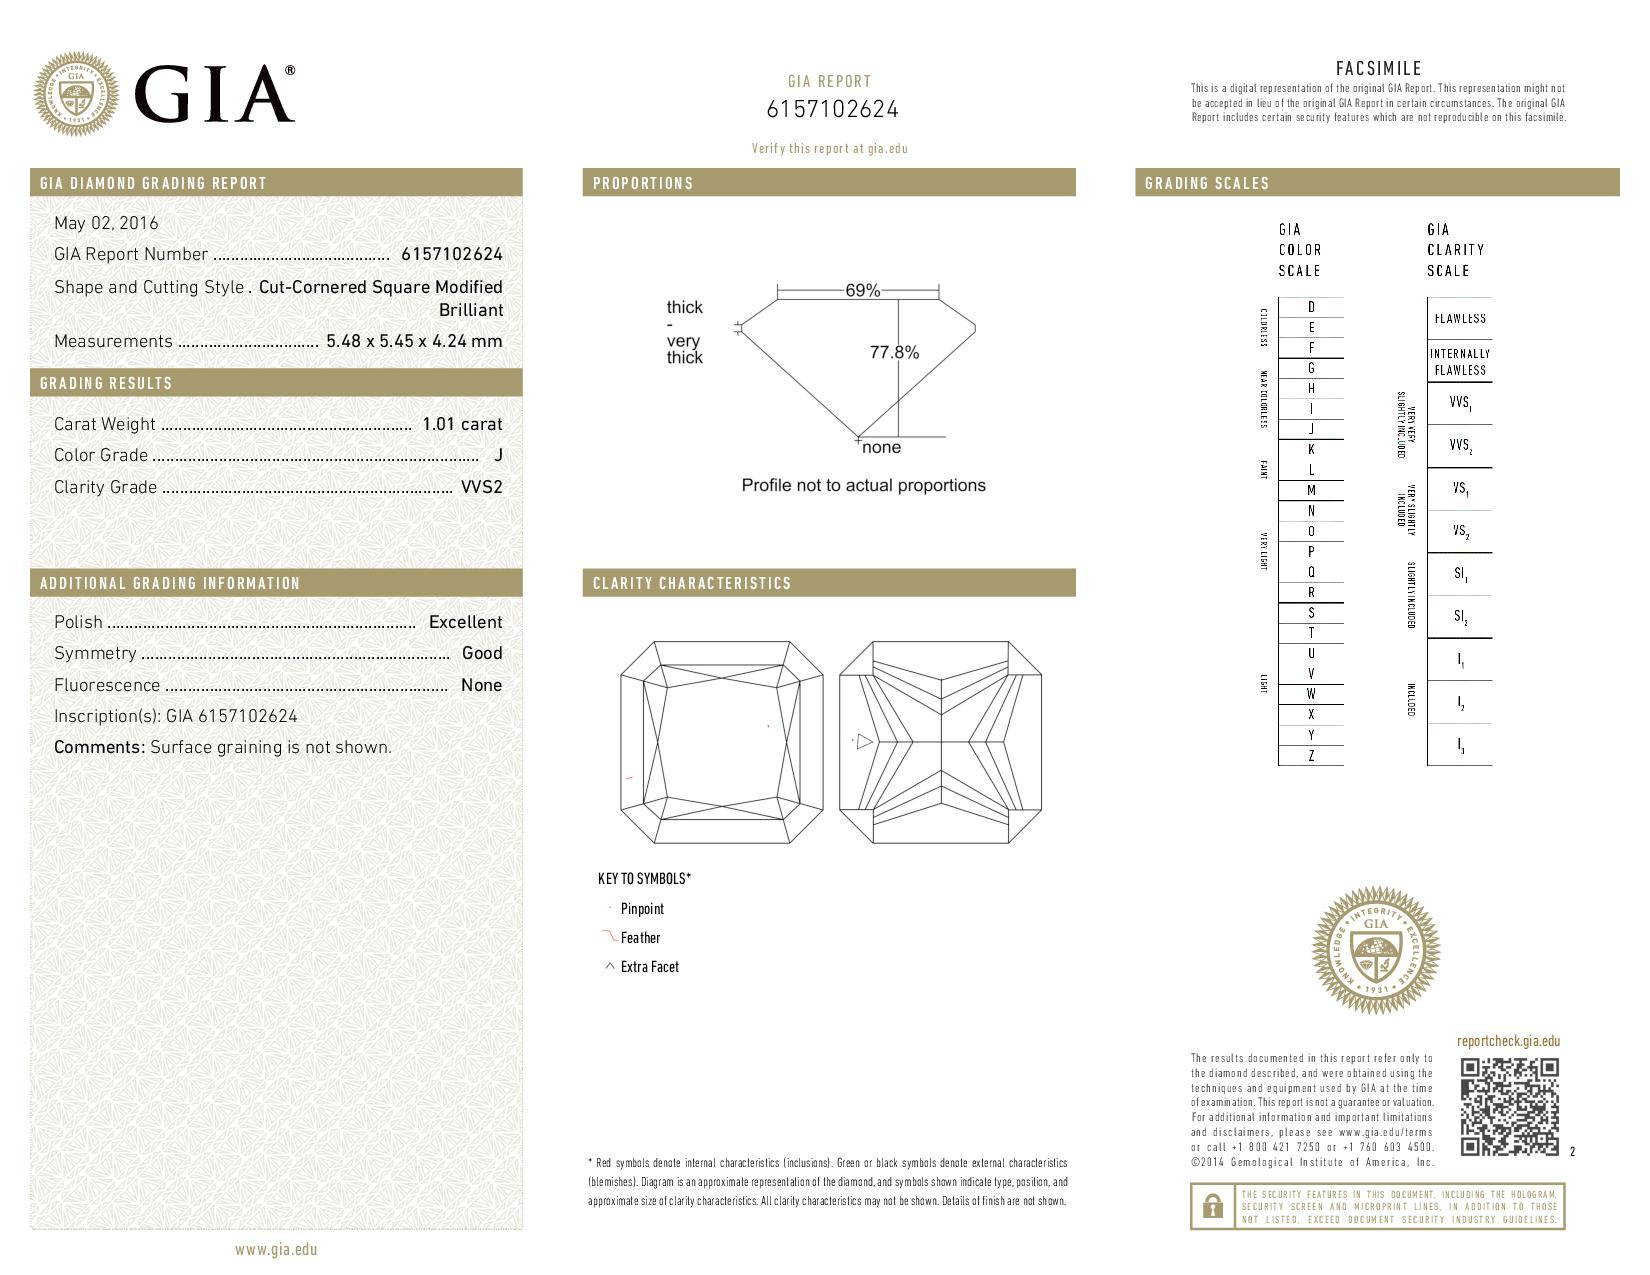 This is a 1.01 carat radiant shape, J color, VVS2 clarity natural diamond accompanied by a GIA grading report.